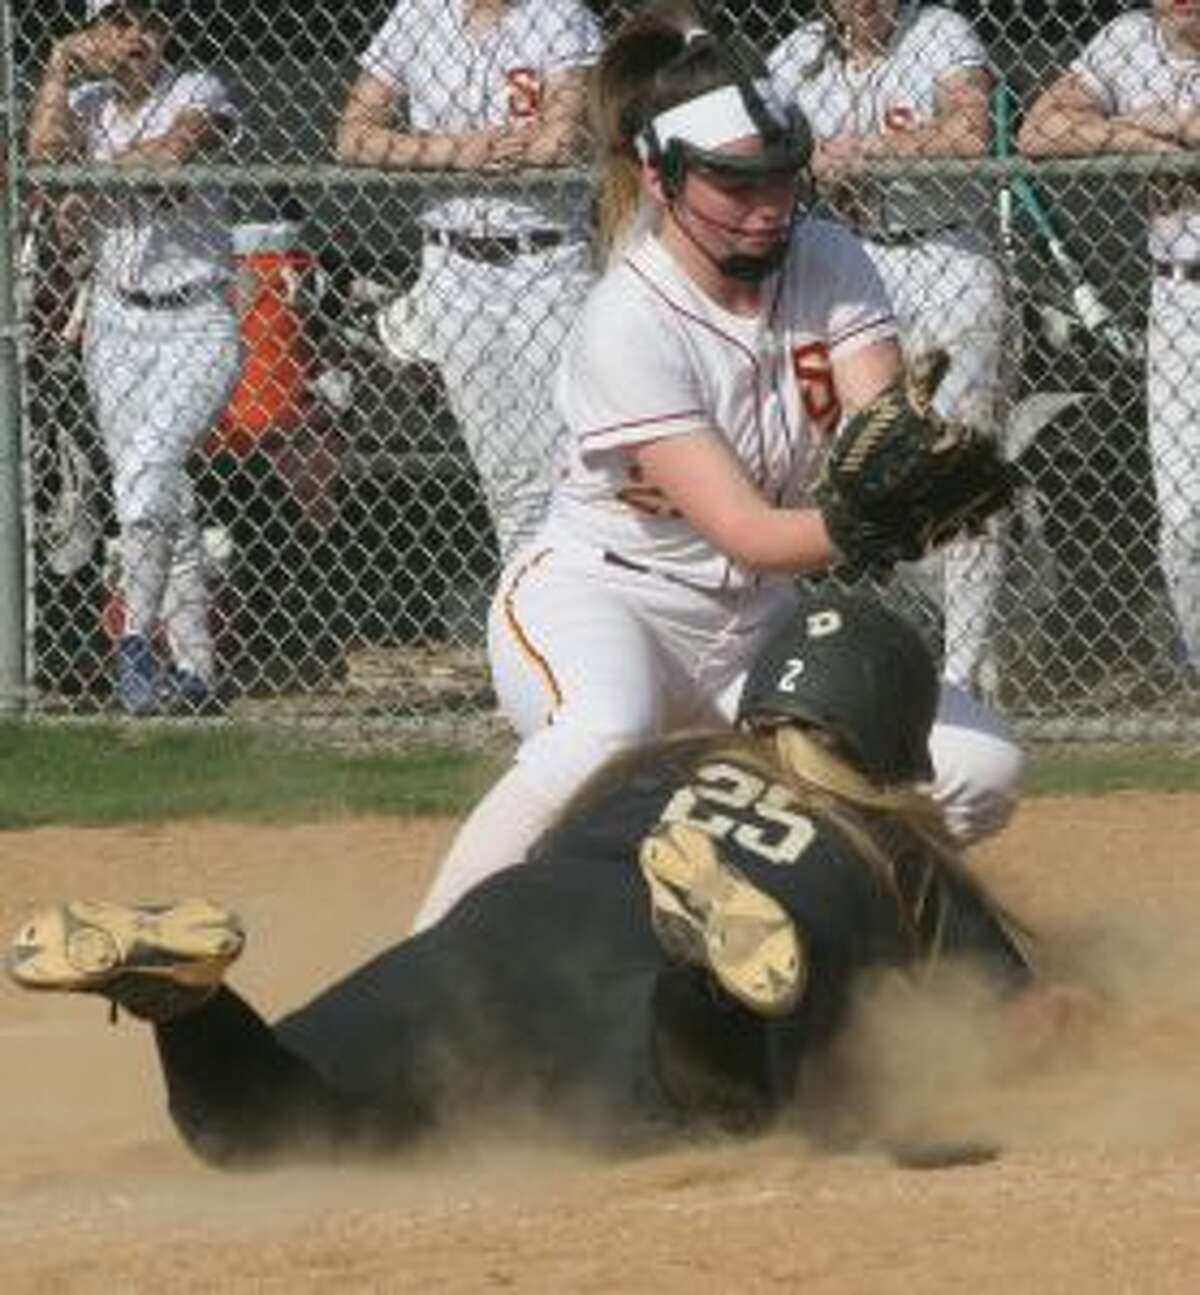 Trumbull High's Delihla Destefano slides into home before St. Joseph pitcher Cat Connell can make a tag. - Bill Bloxsom photos